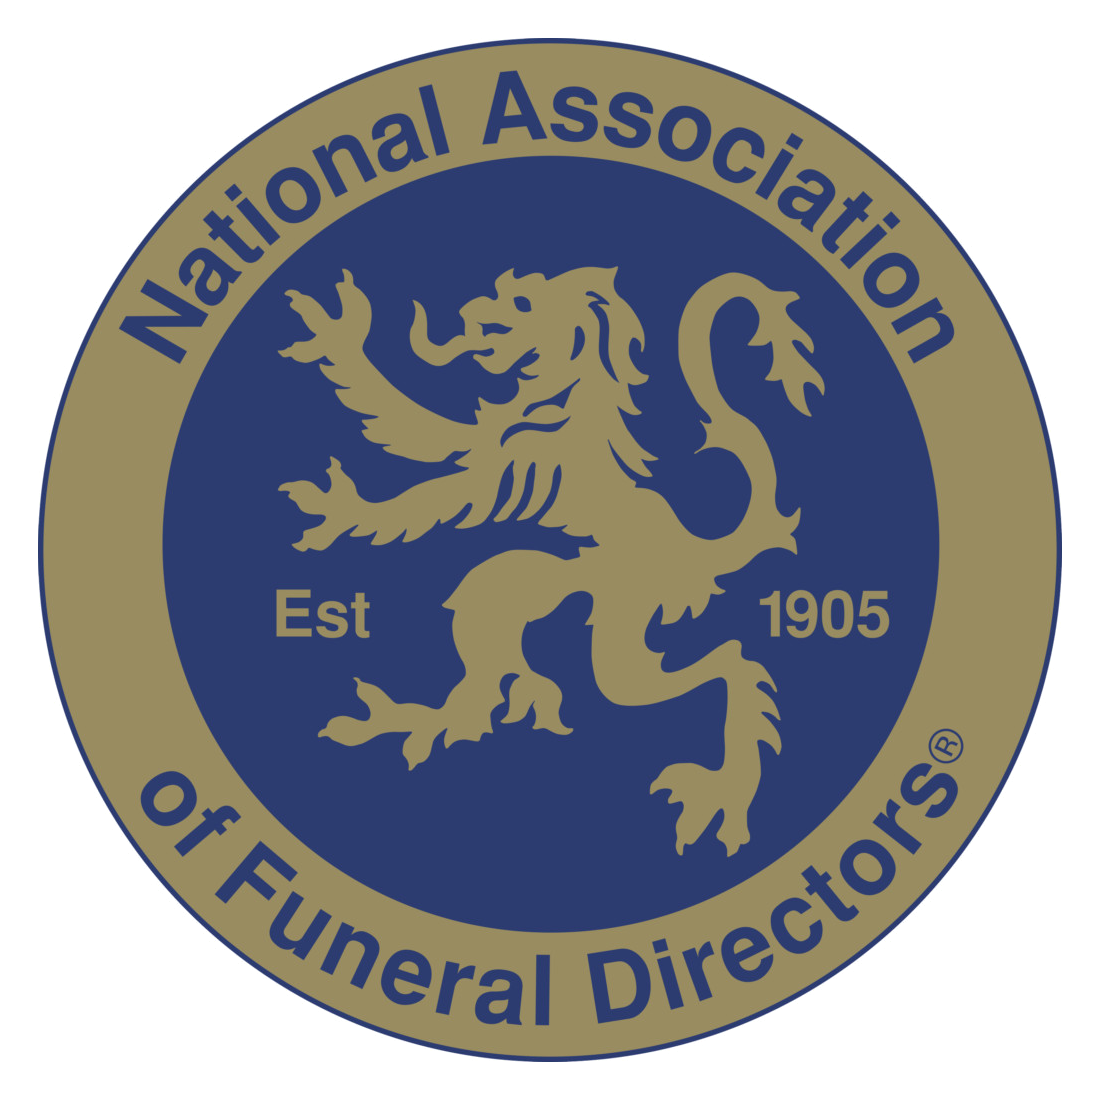 National Assoc of Funeral Directors